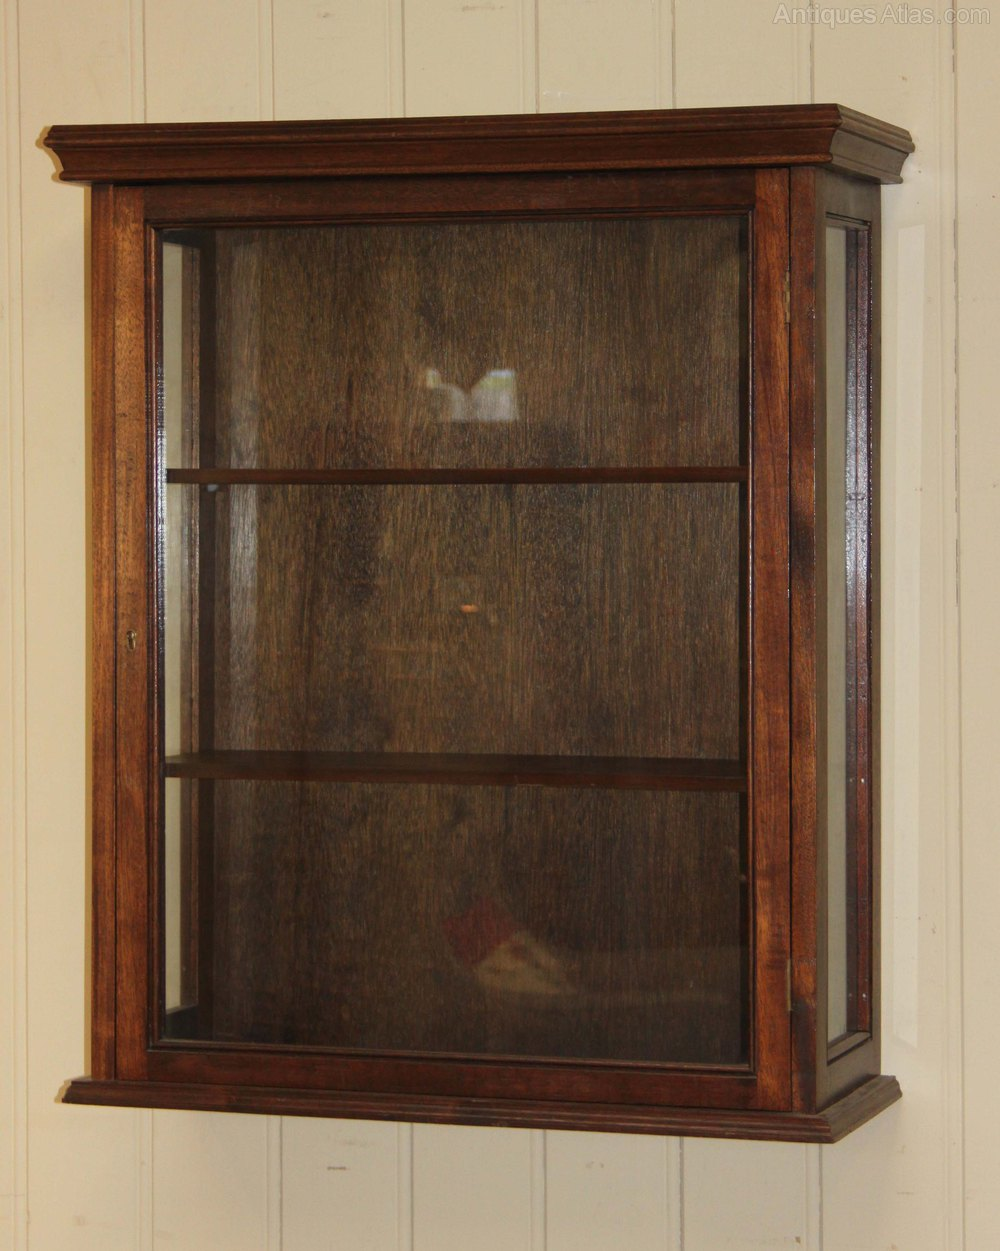 Antiques atlas vintage mahogany wall display cabinet for Antique display cabinet